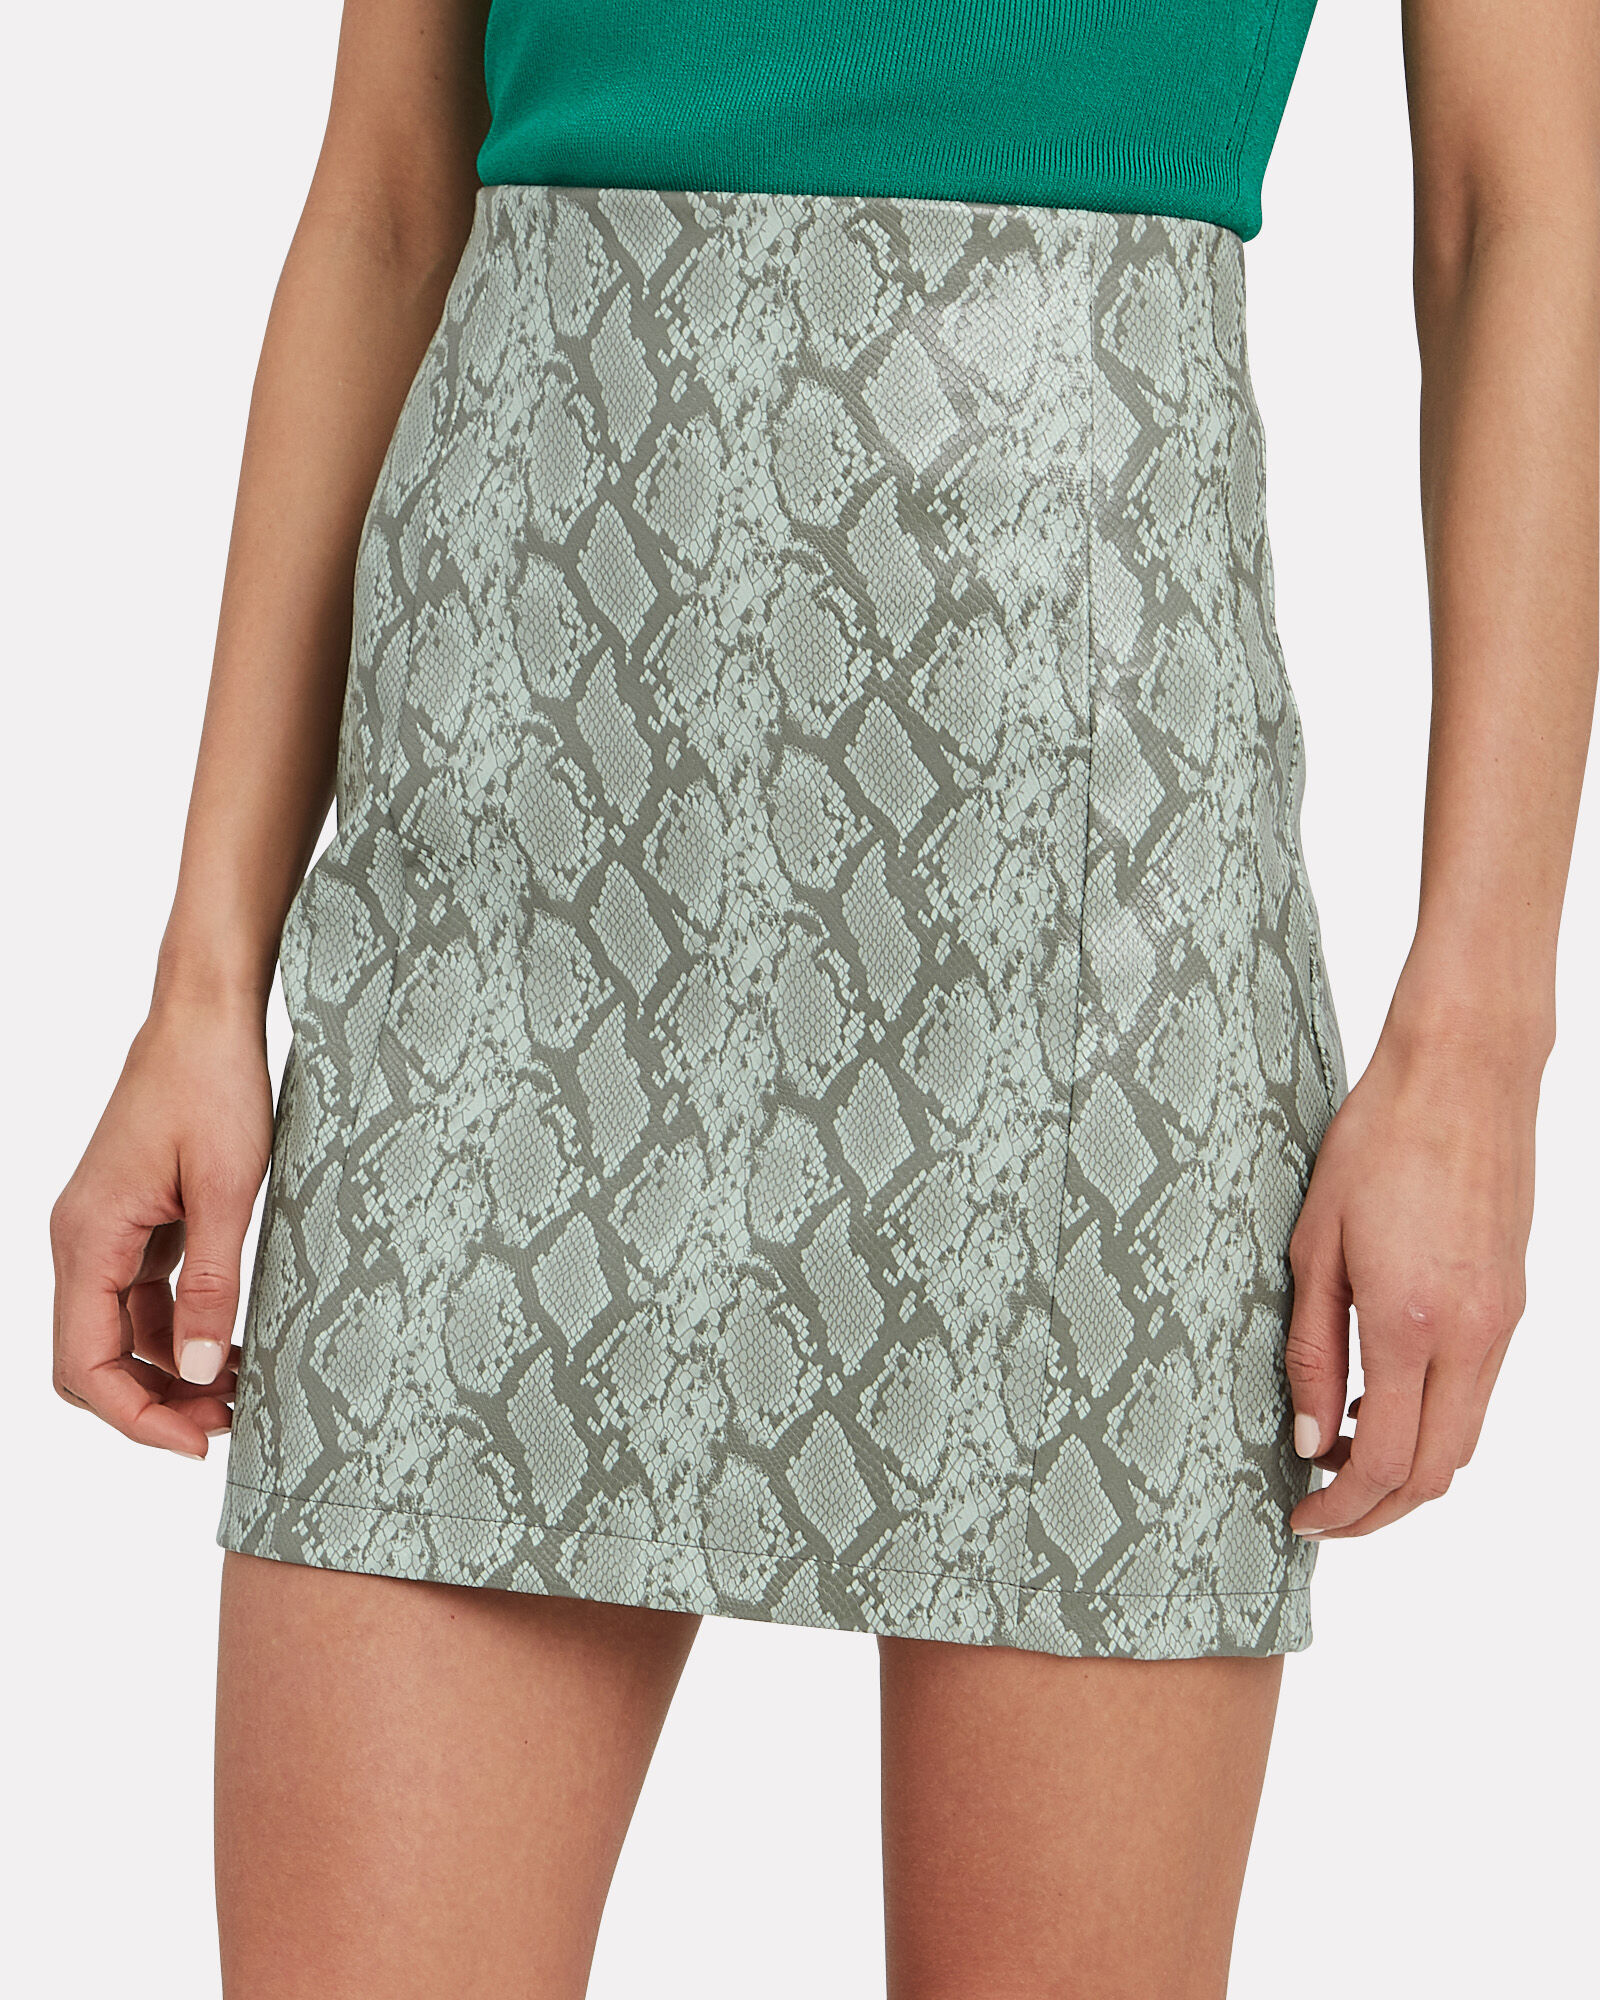 Rida Snakeprint Mini Skirt, GREEN-LT, hi-res